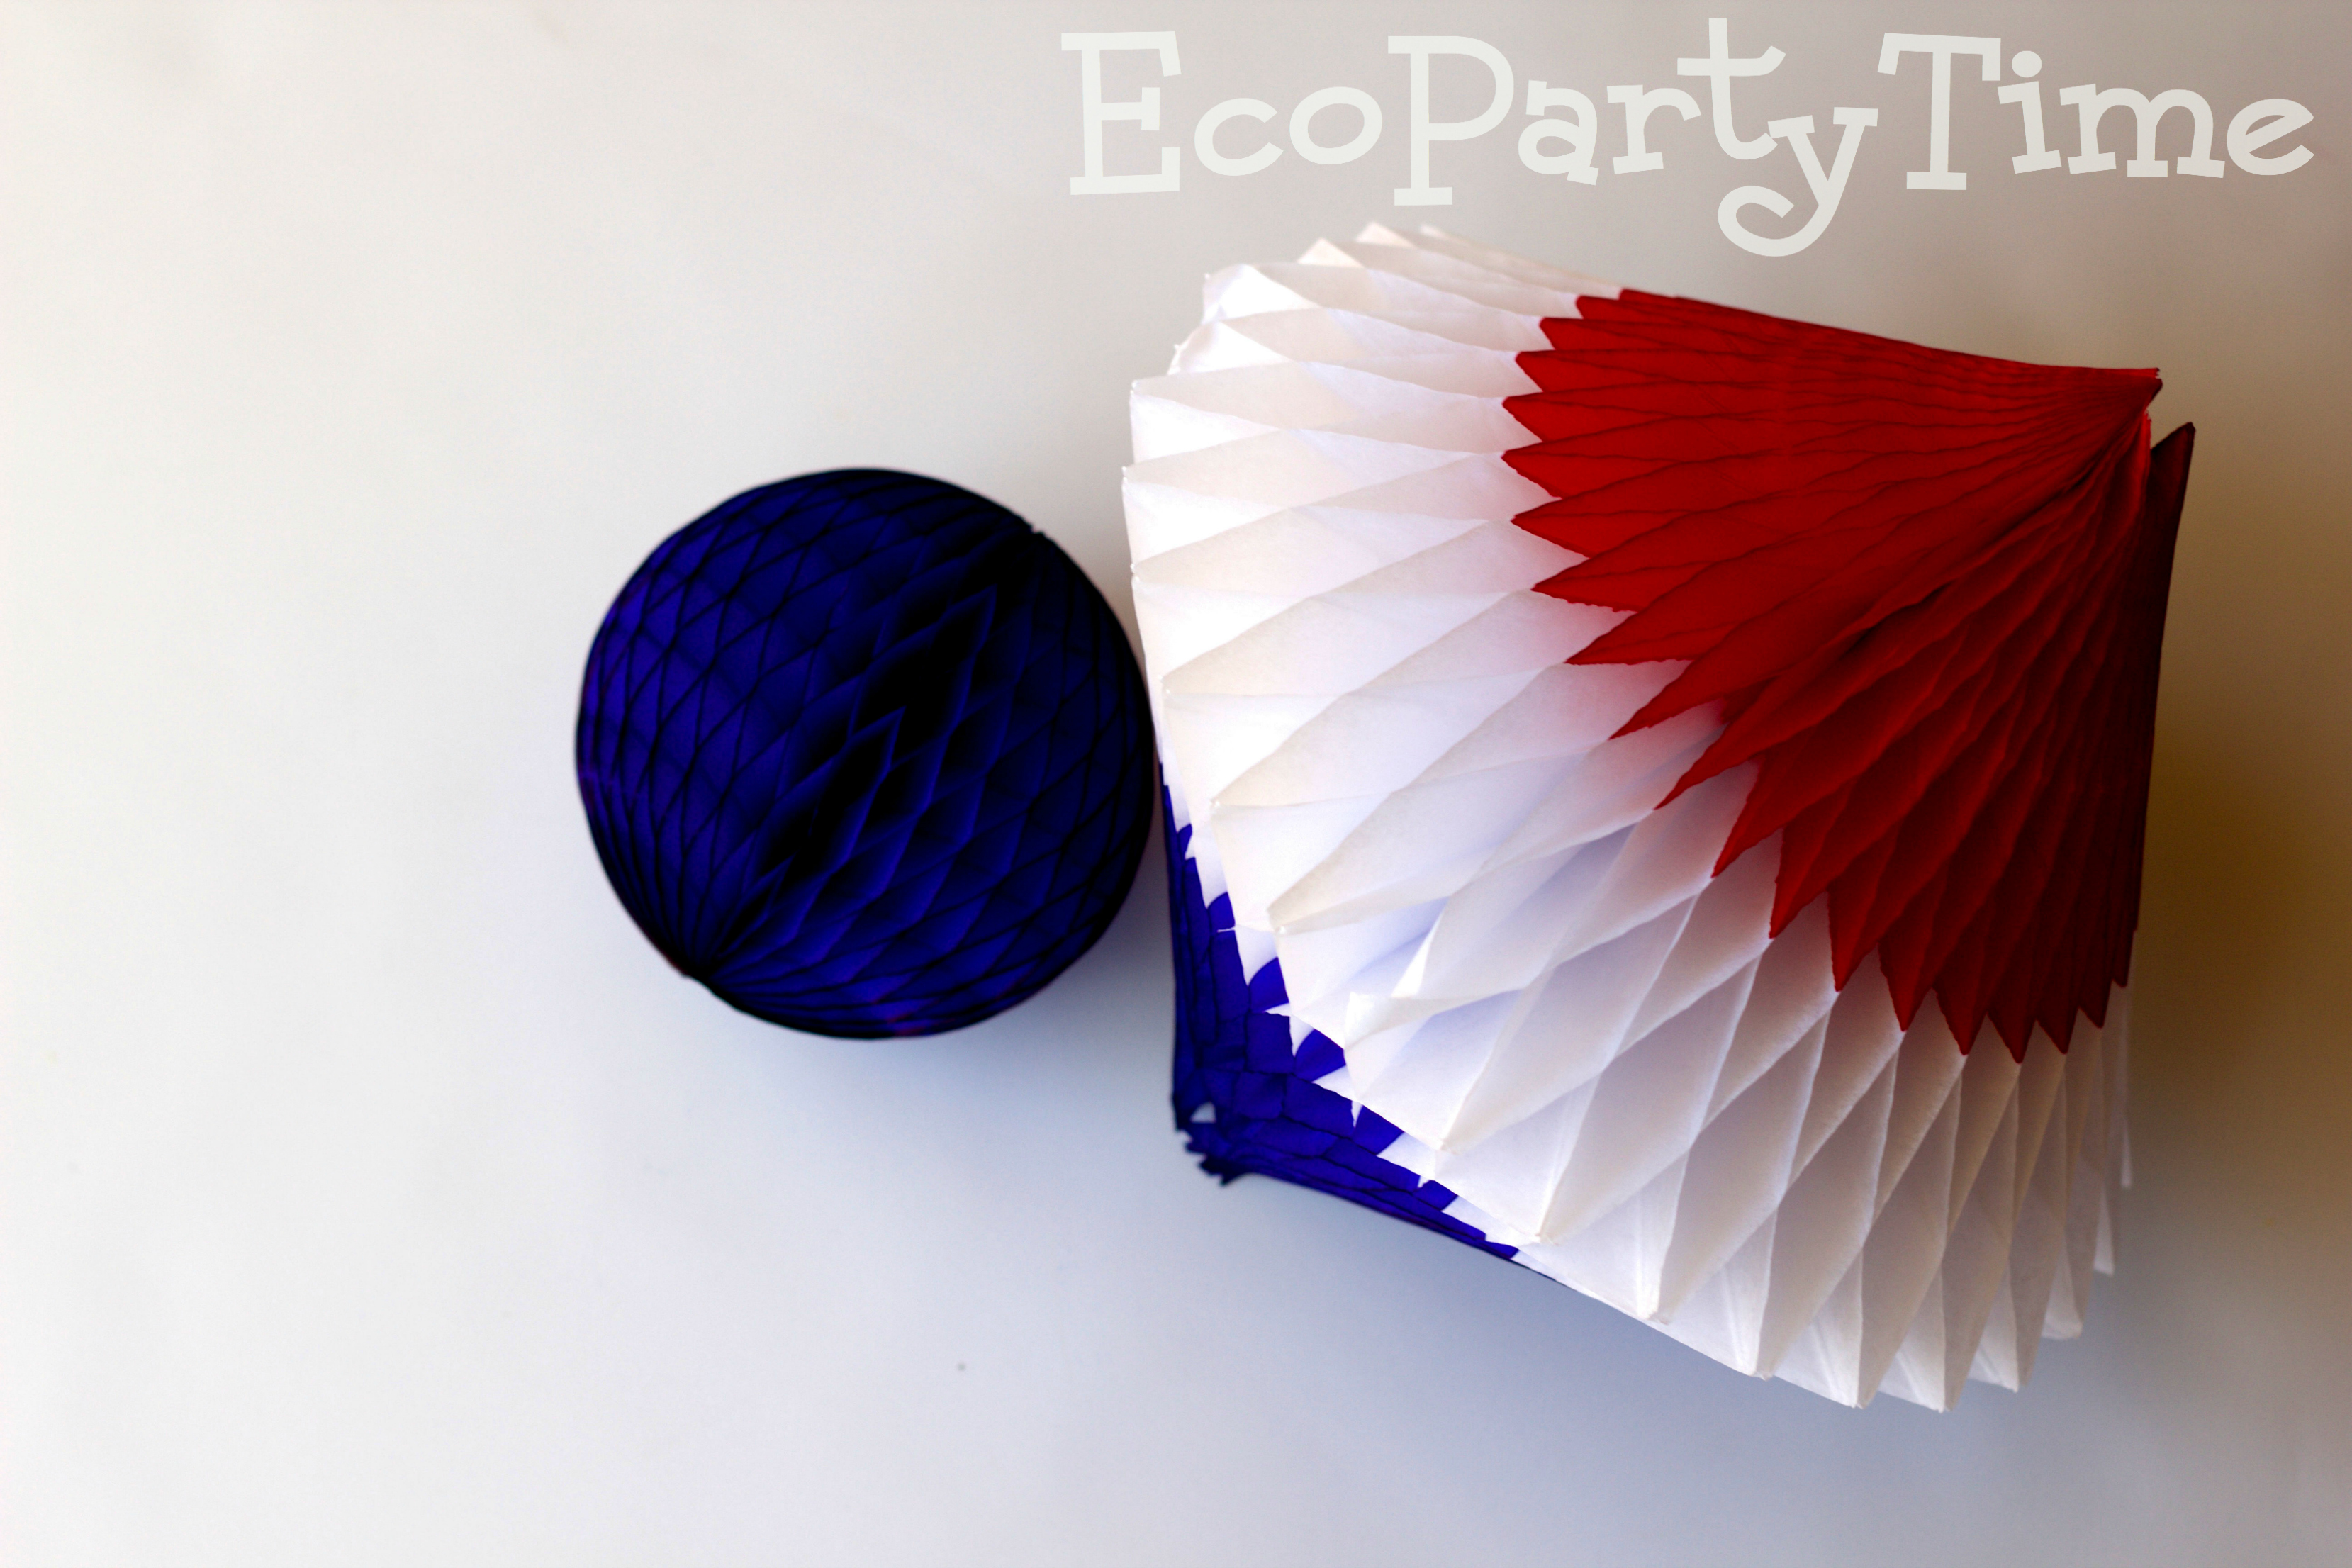 Ecopartytime: Eco-Friendly Memorial Day Products